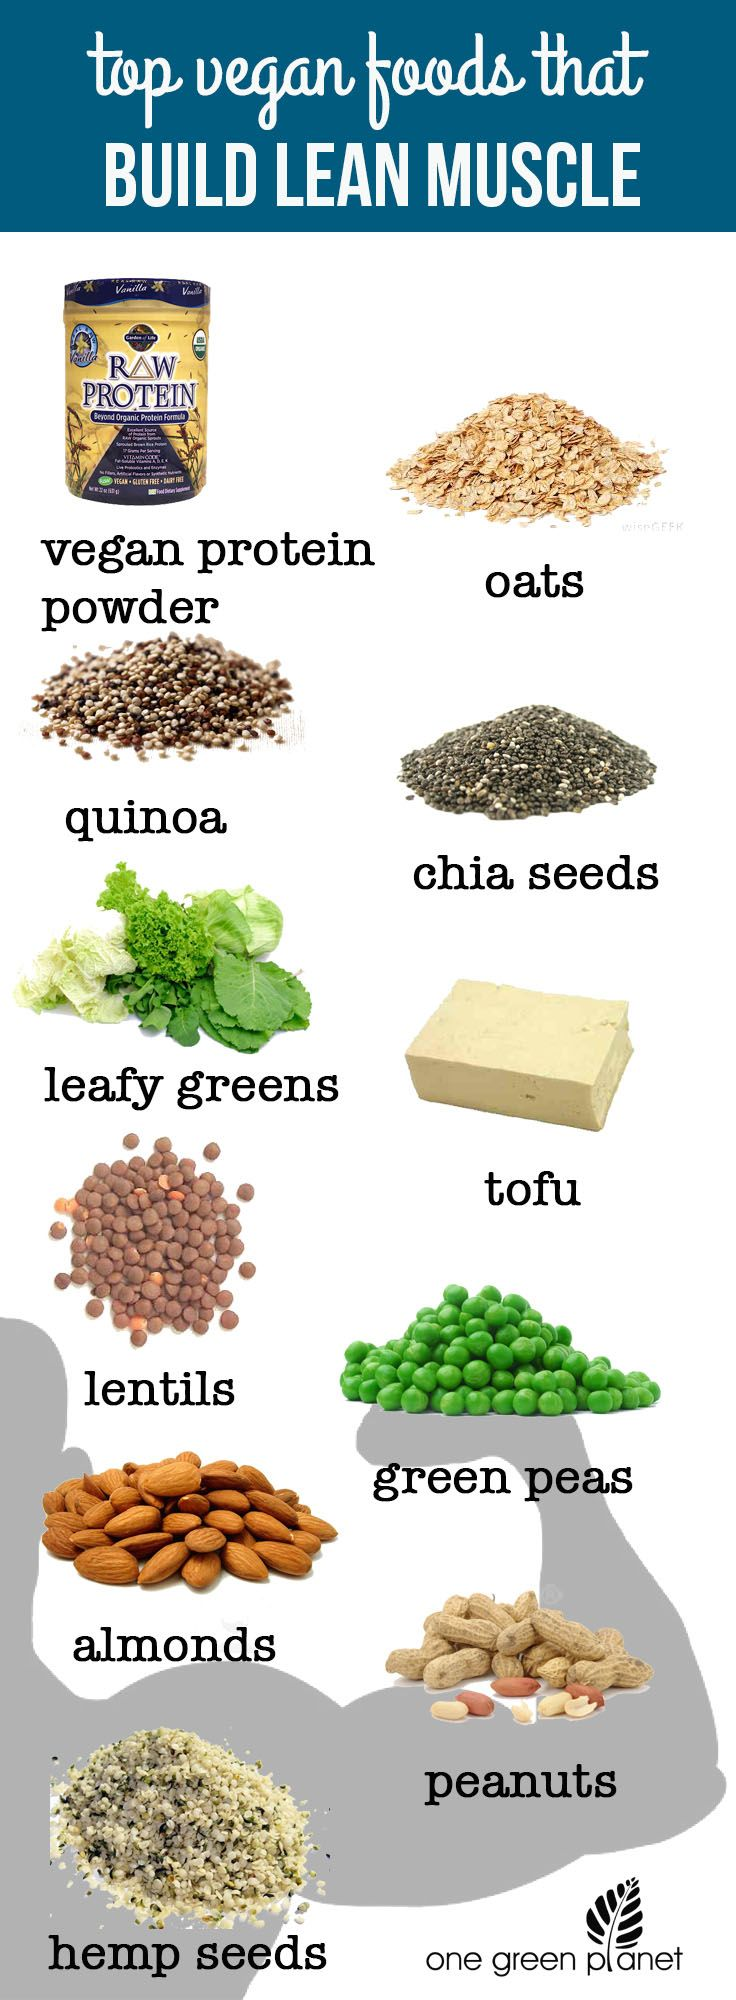 Top Vegan Foods that Build Lean Muscle